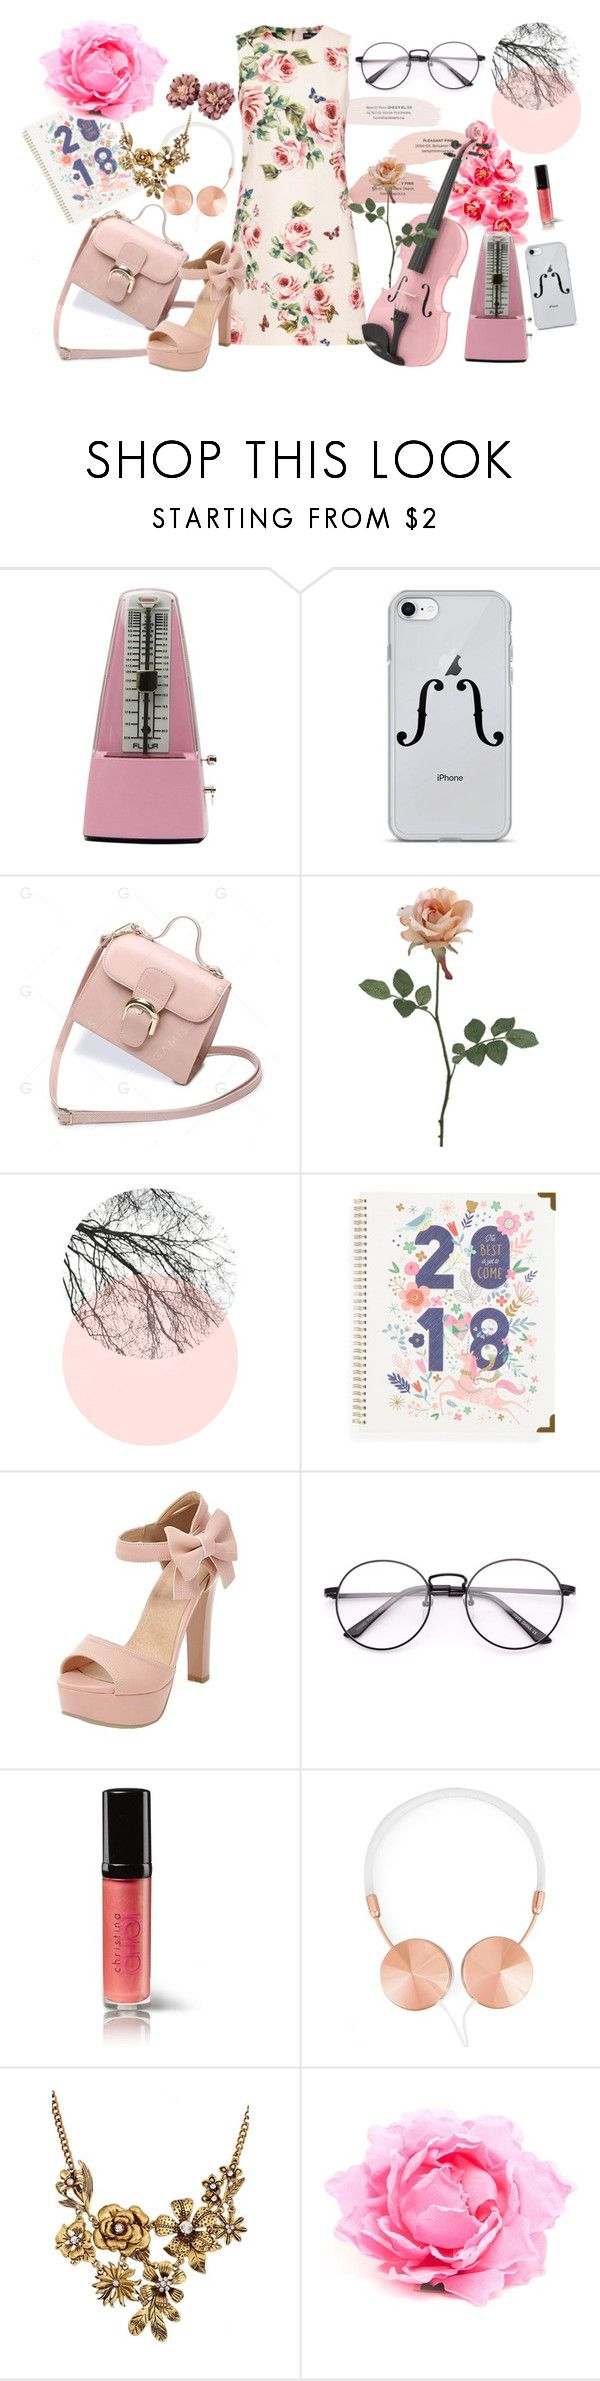 """""""violin in the spring"""" by hschommer ❤ liked on Polyvore featuring Dolce&Gabbana, Universal, SHAN, AiSun, Christina Choi Cosmetics, Frends, WithChic and Nude"""